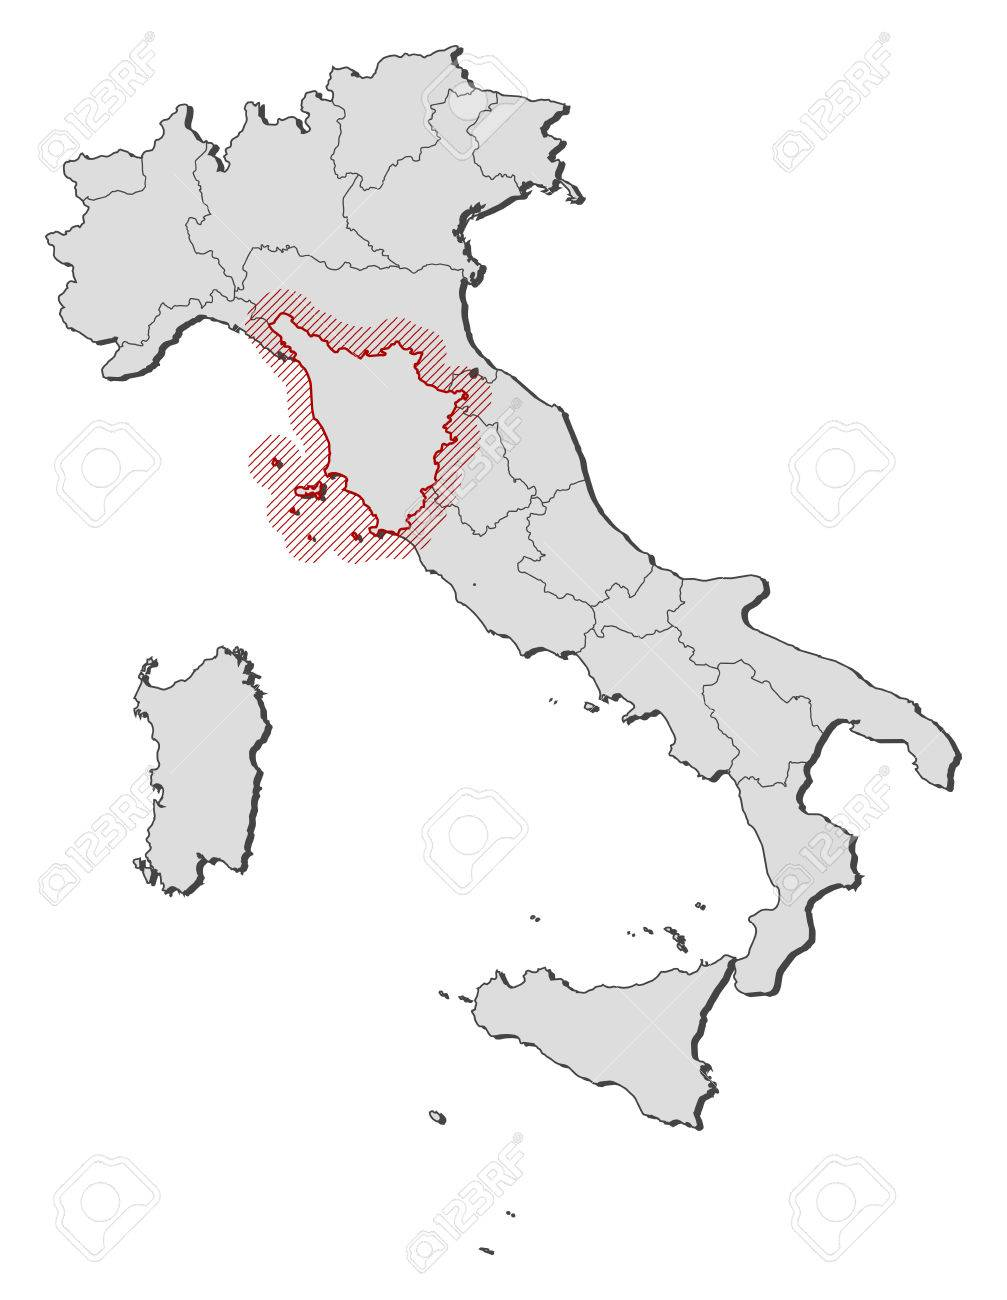 Map Of Italy With The Provinces Tuscany Is Highlighted By A